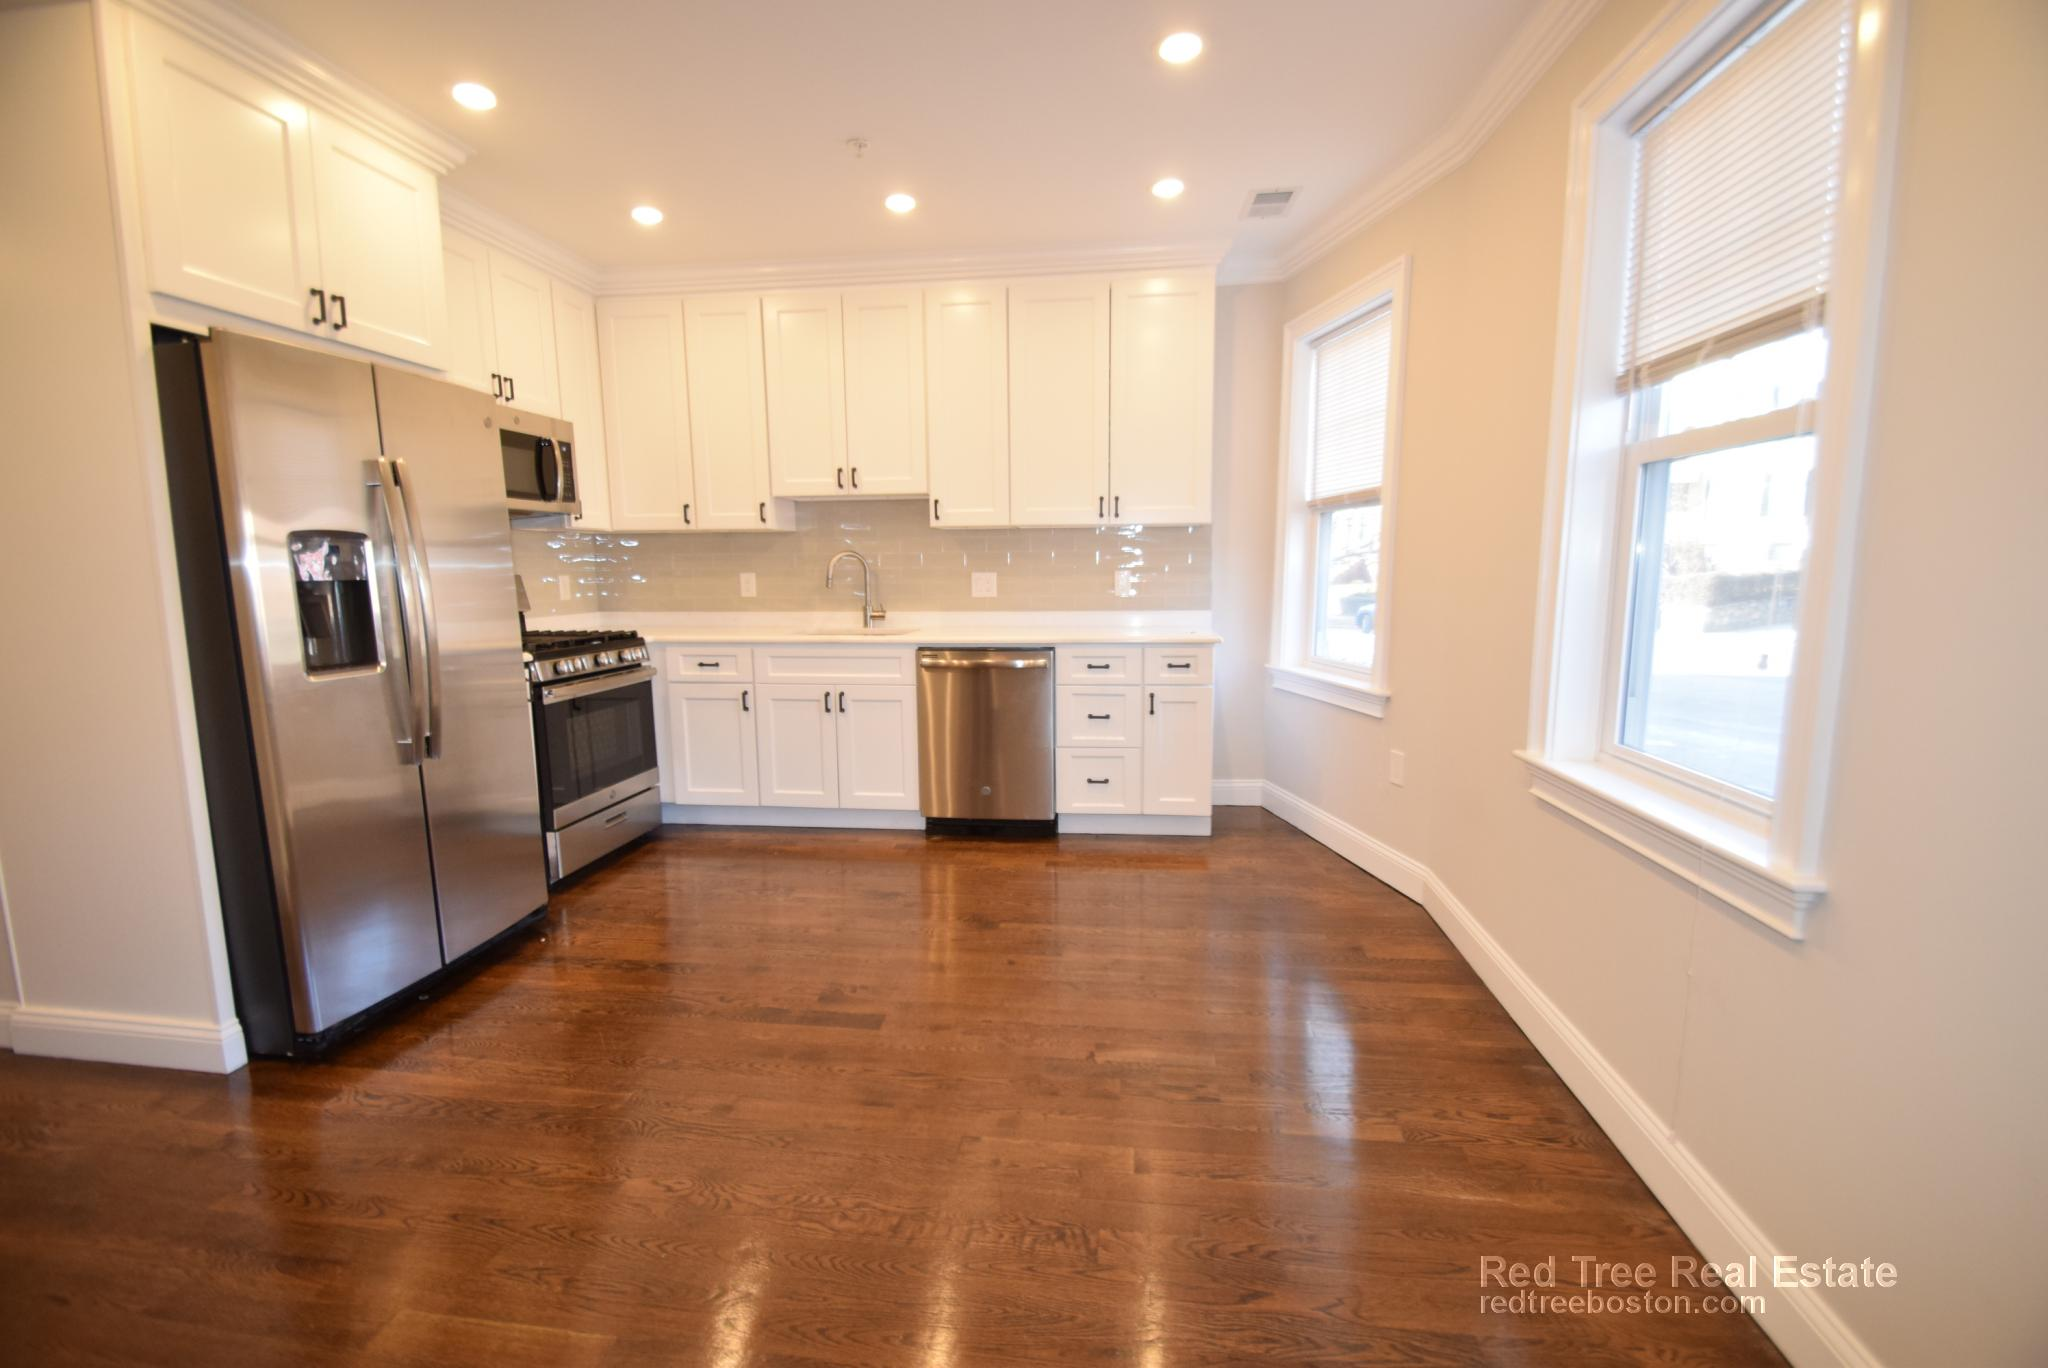 1 Bed, 1.5 Baths apartment in Boston, Brighton for $750